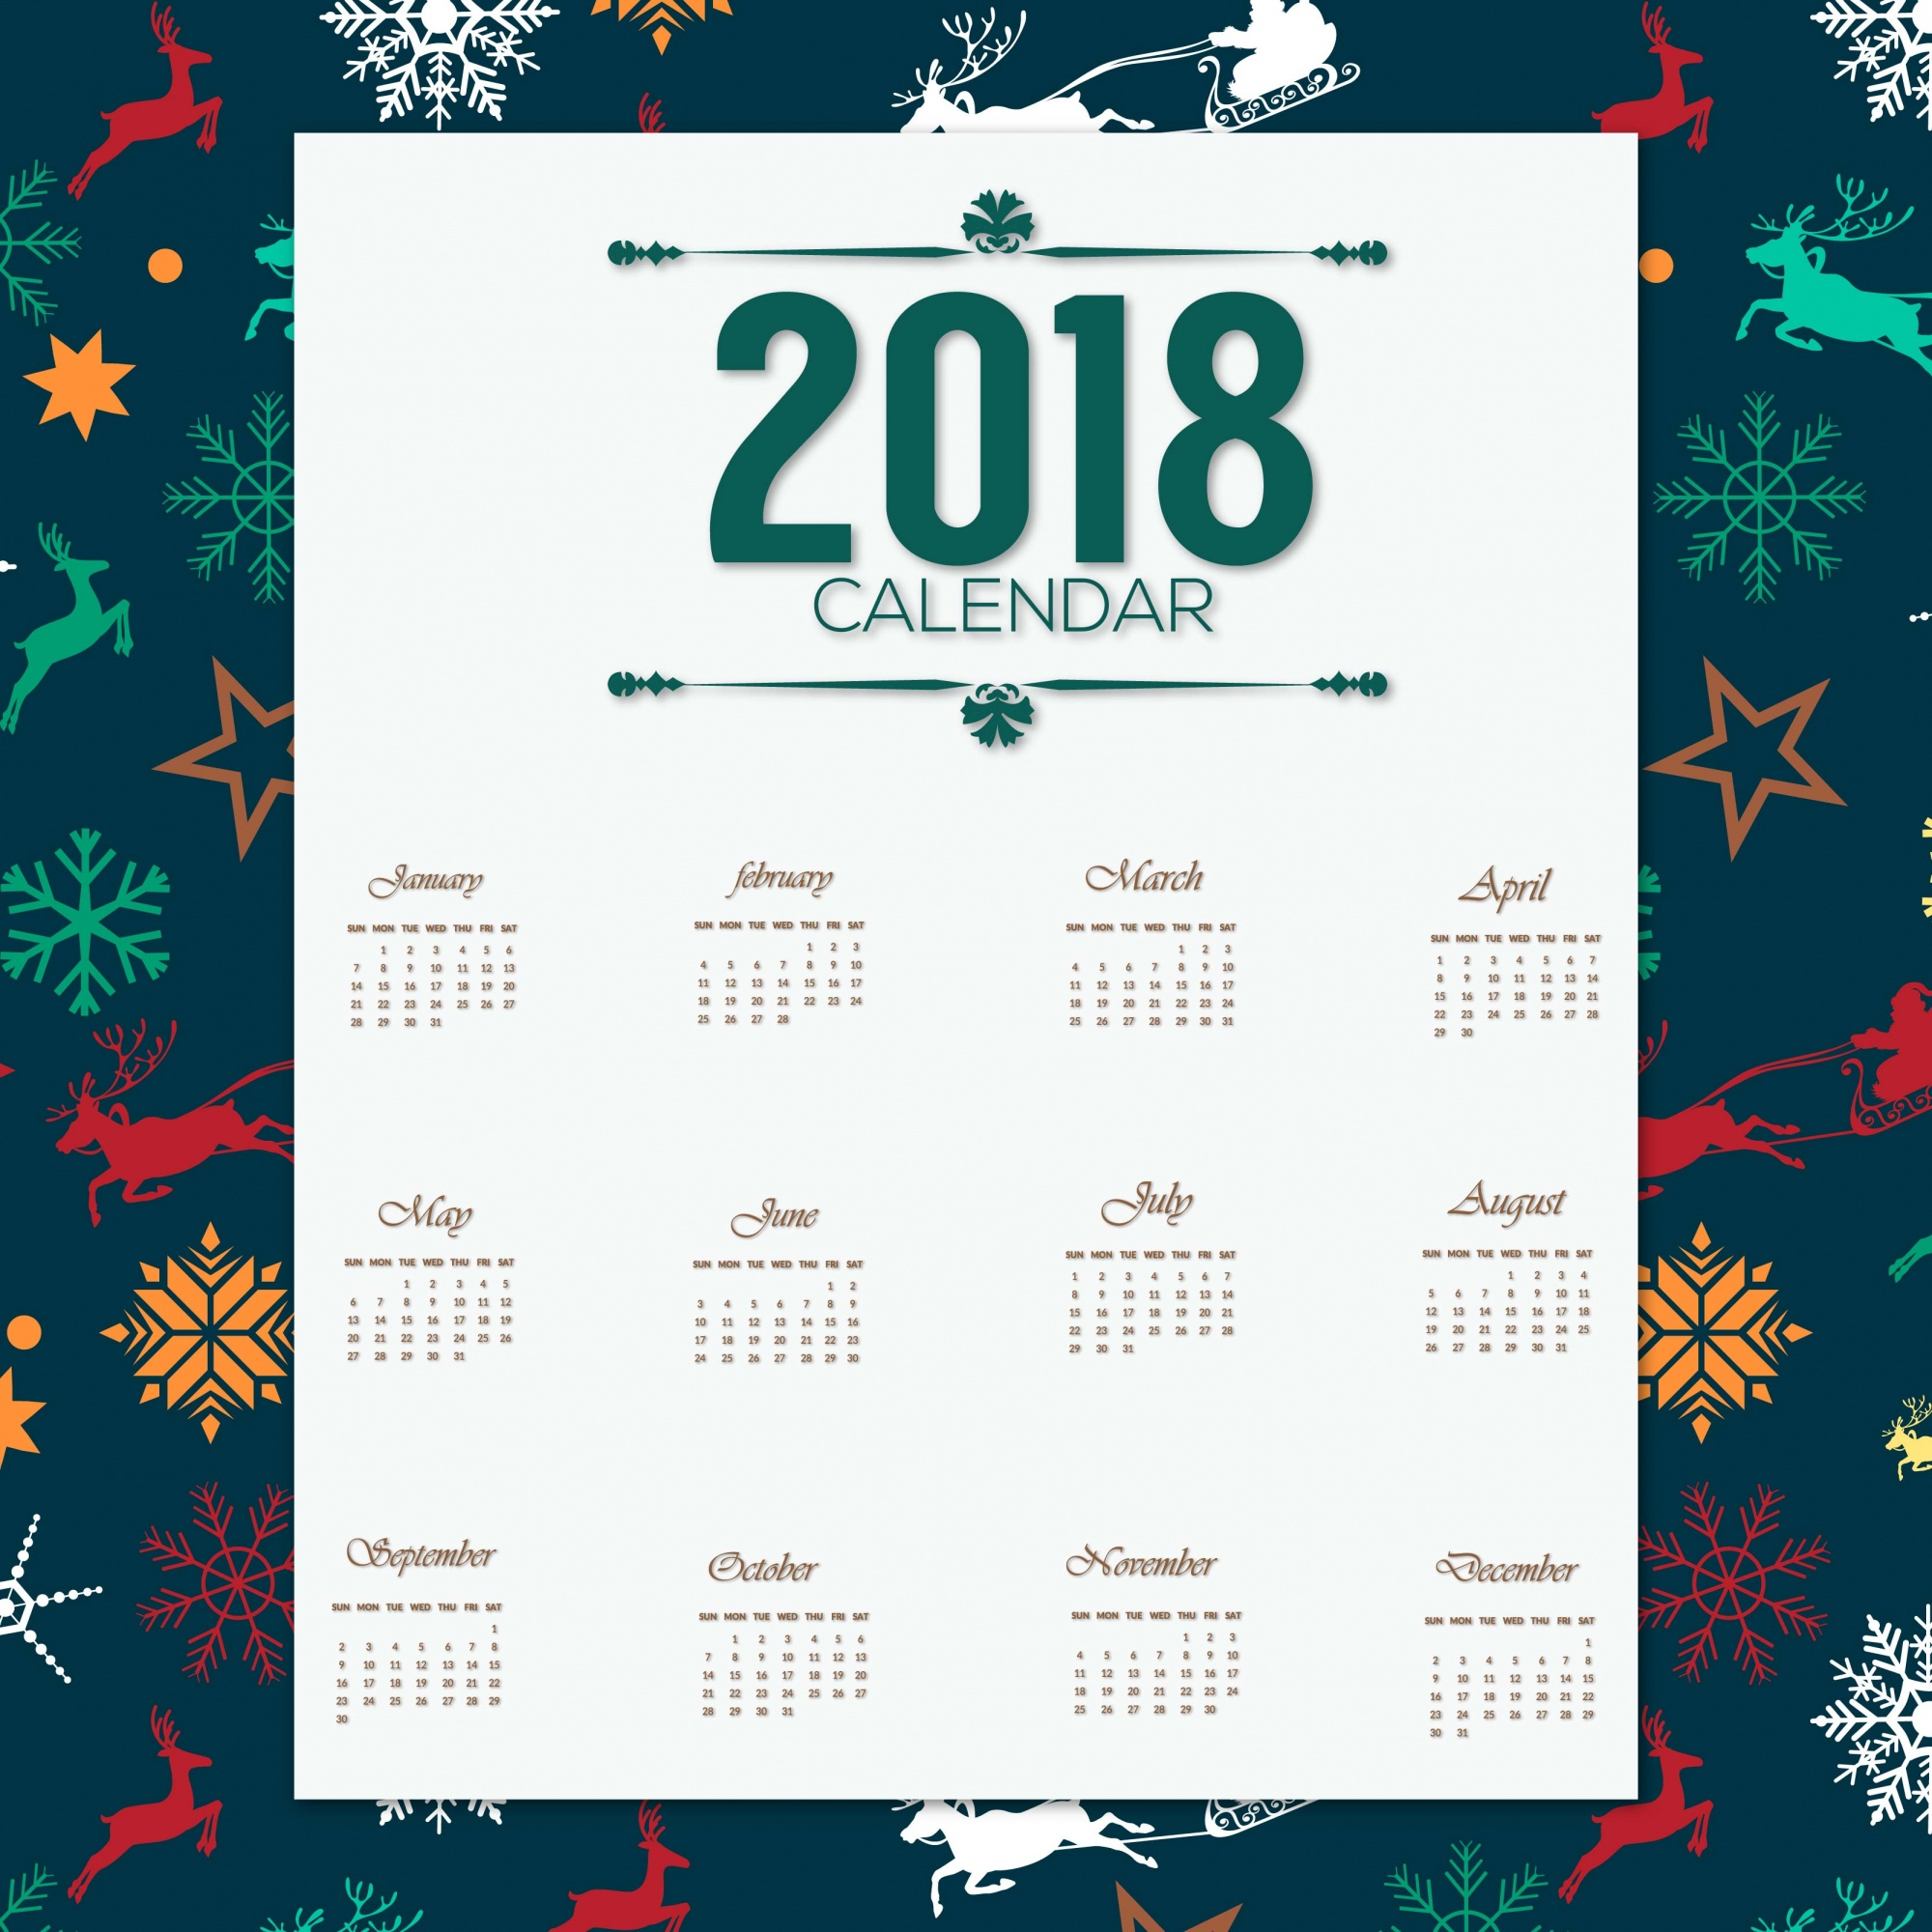 2018 calender desgin with chrismas pattern